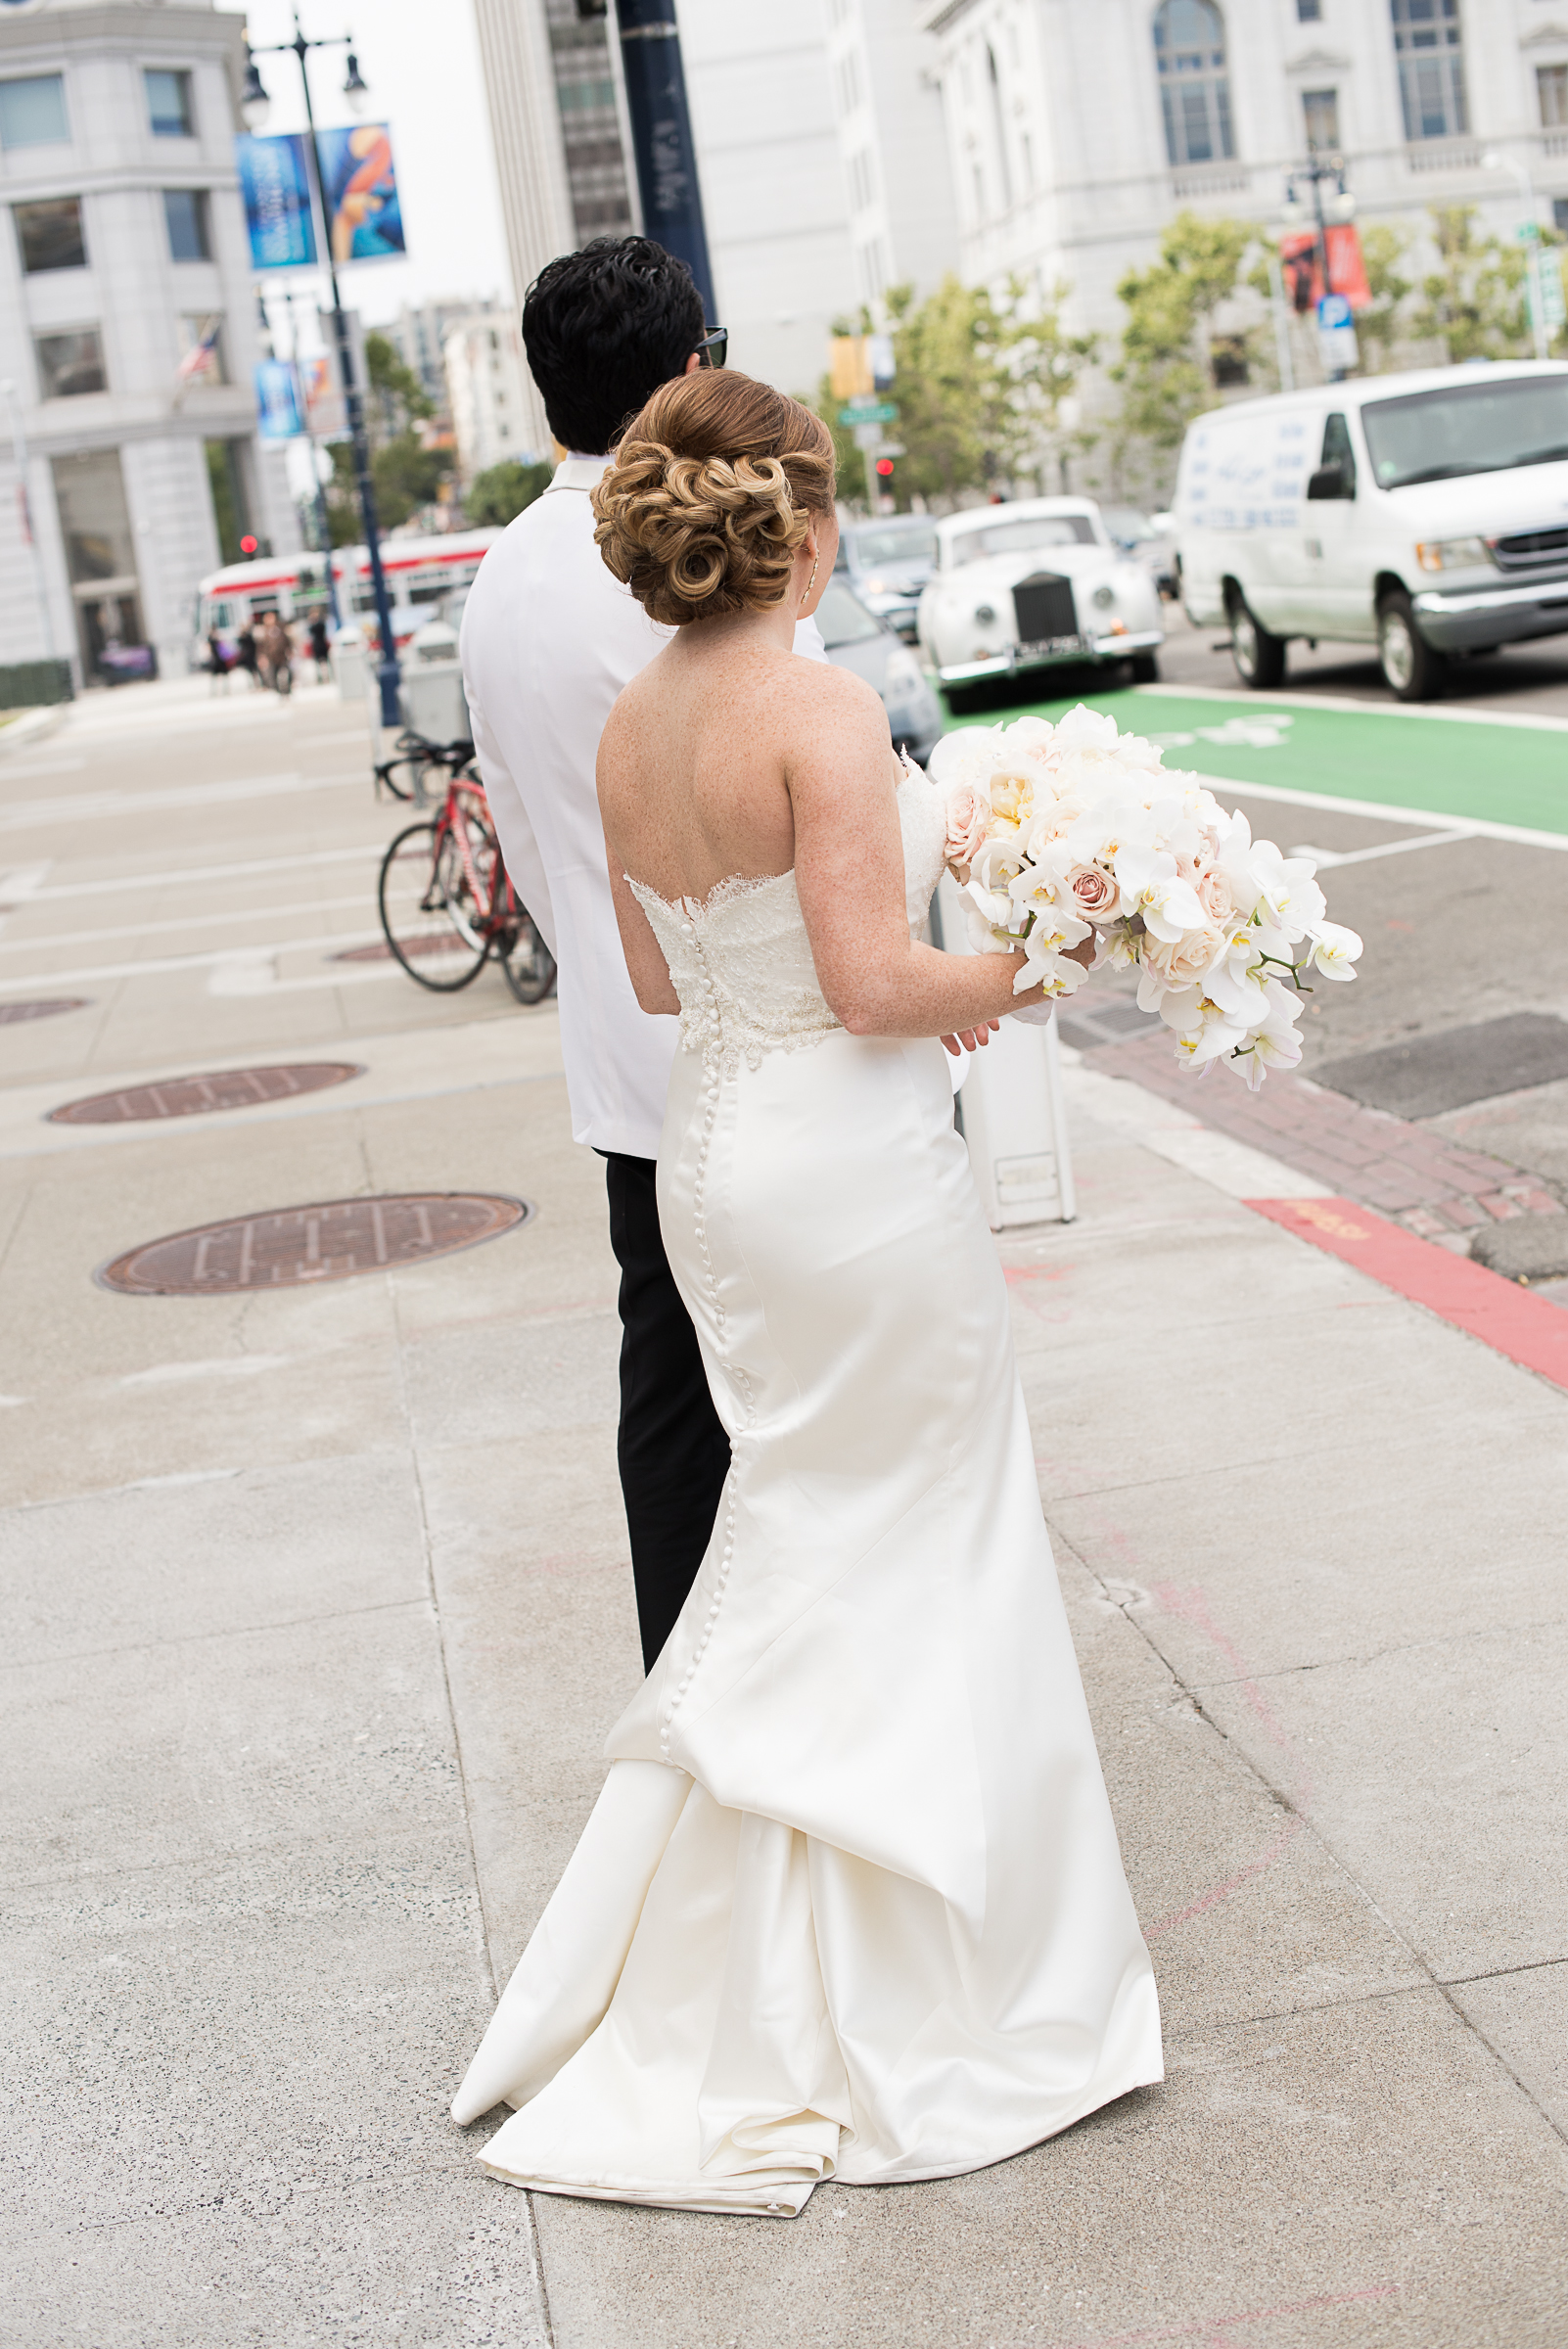 San-Francisco-City-Hall-Wedding-Makeup-and-Hair.jpg